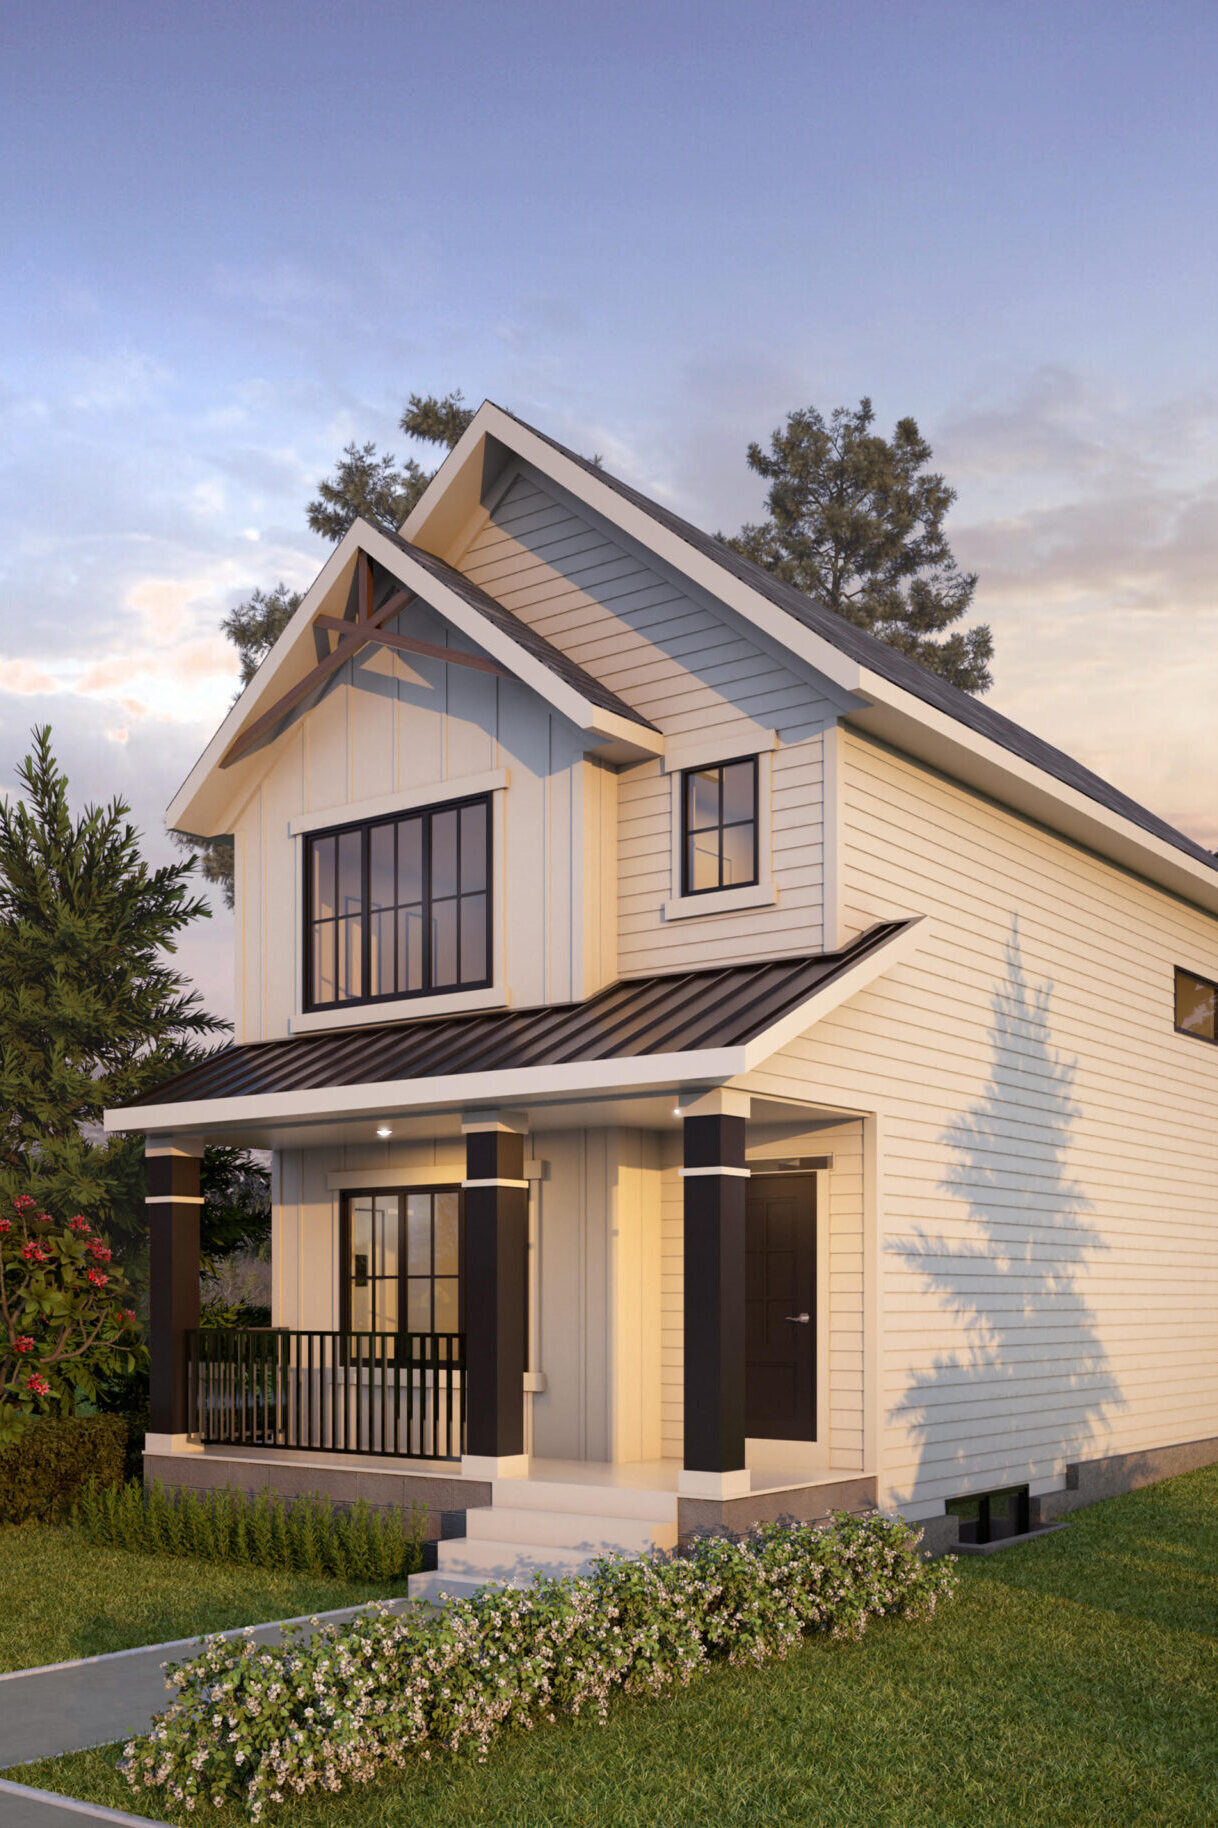 A modern prairie laned home with detached garage features black window trim and white siding, including a wide front porch.